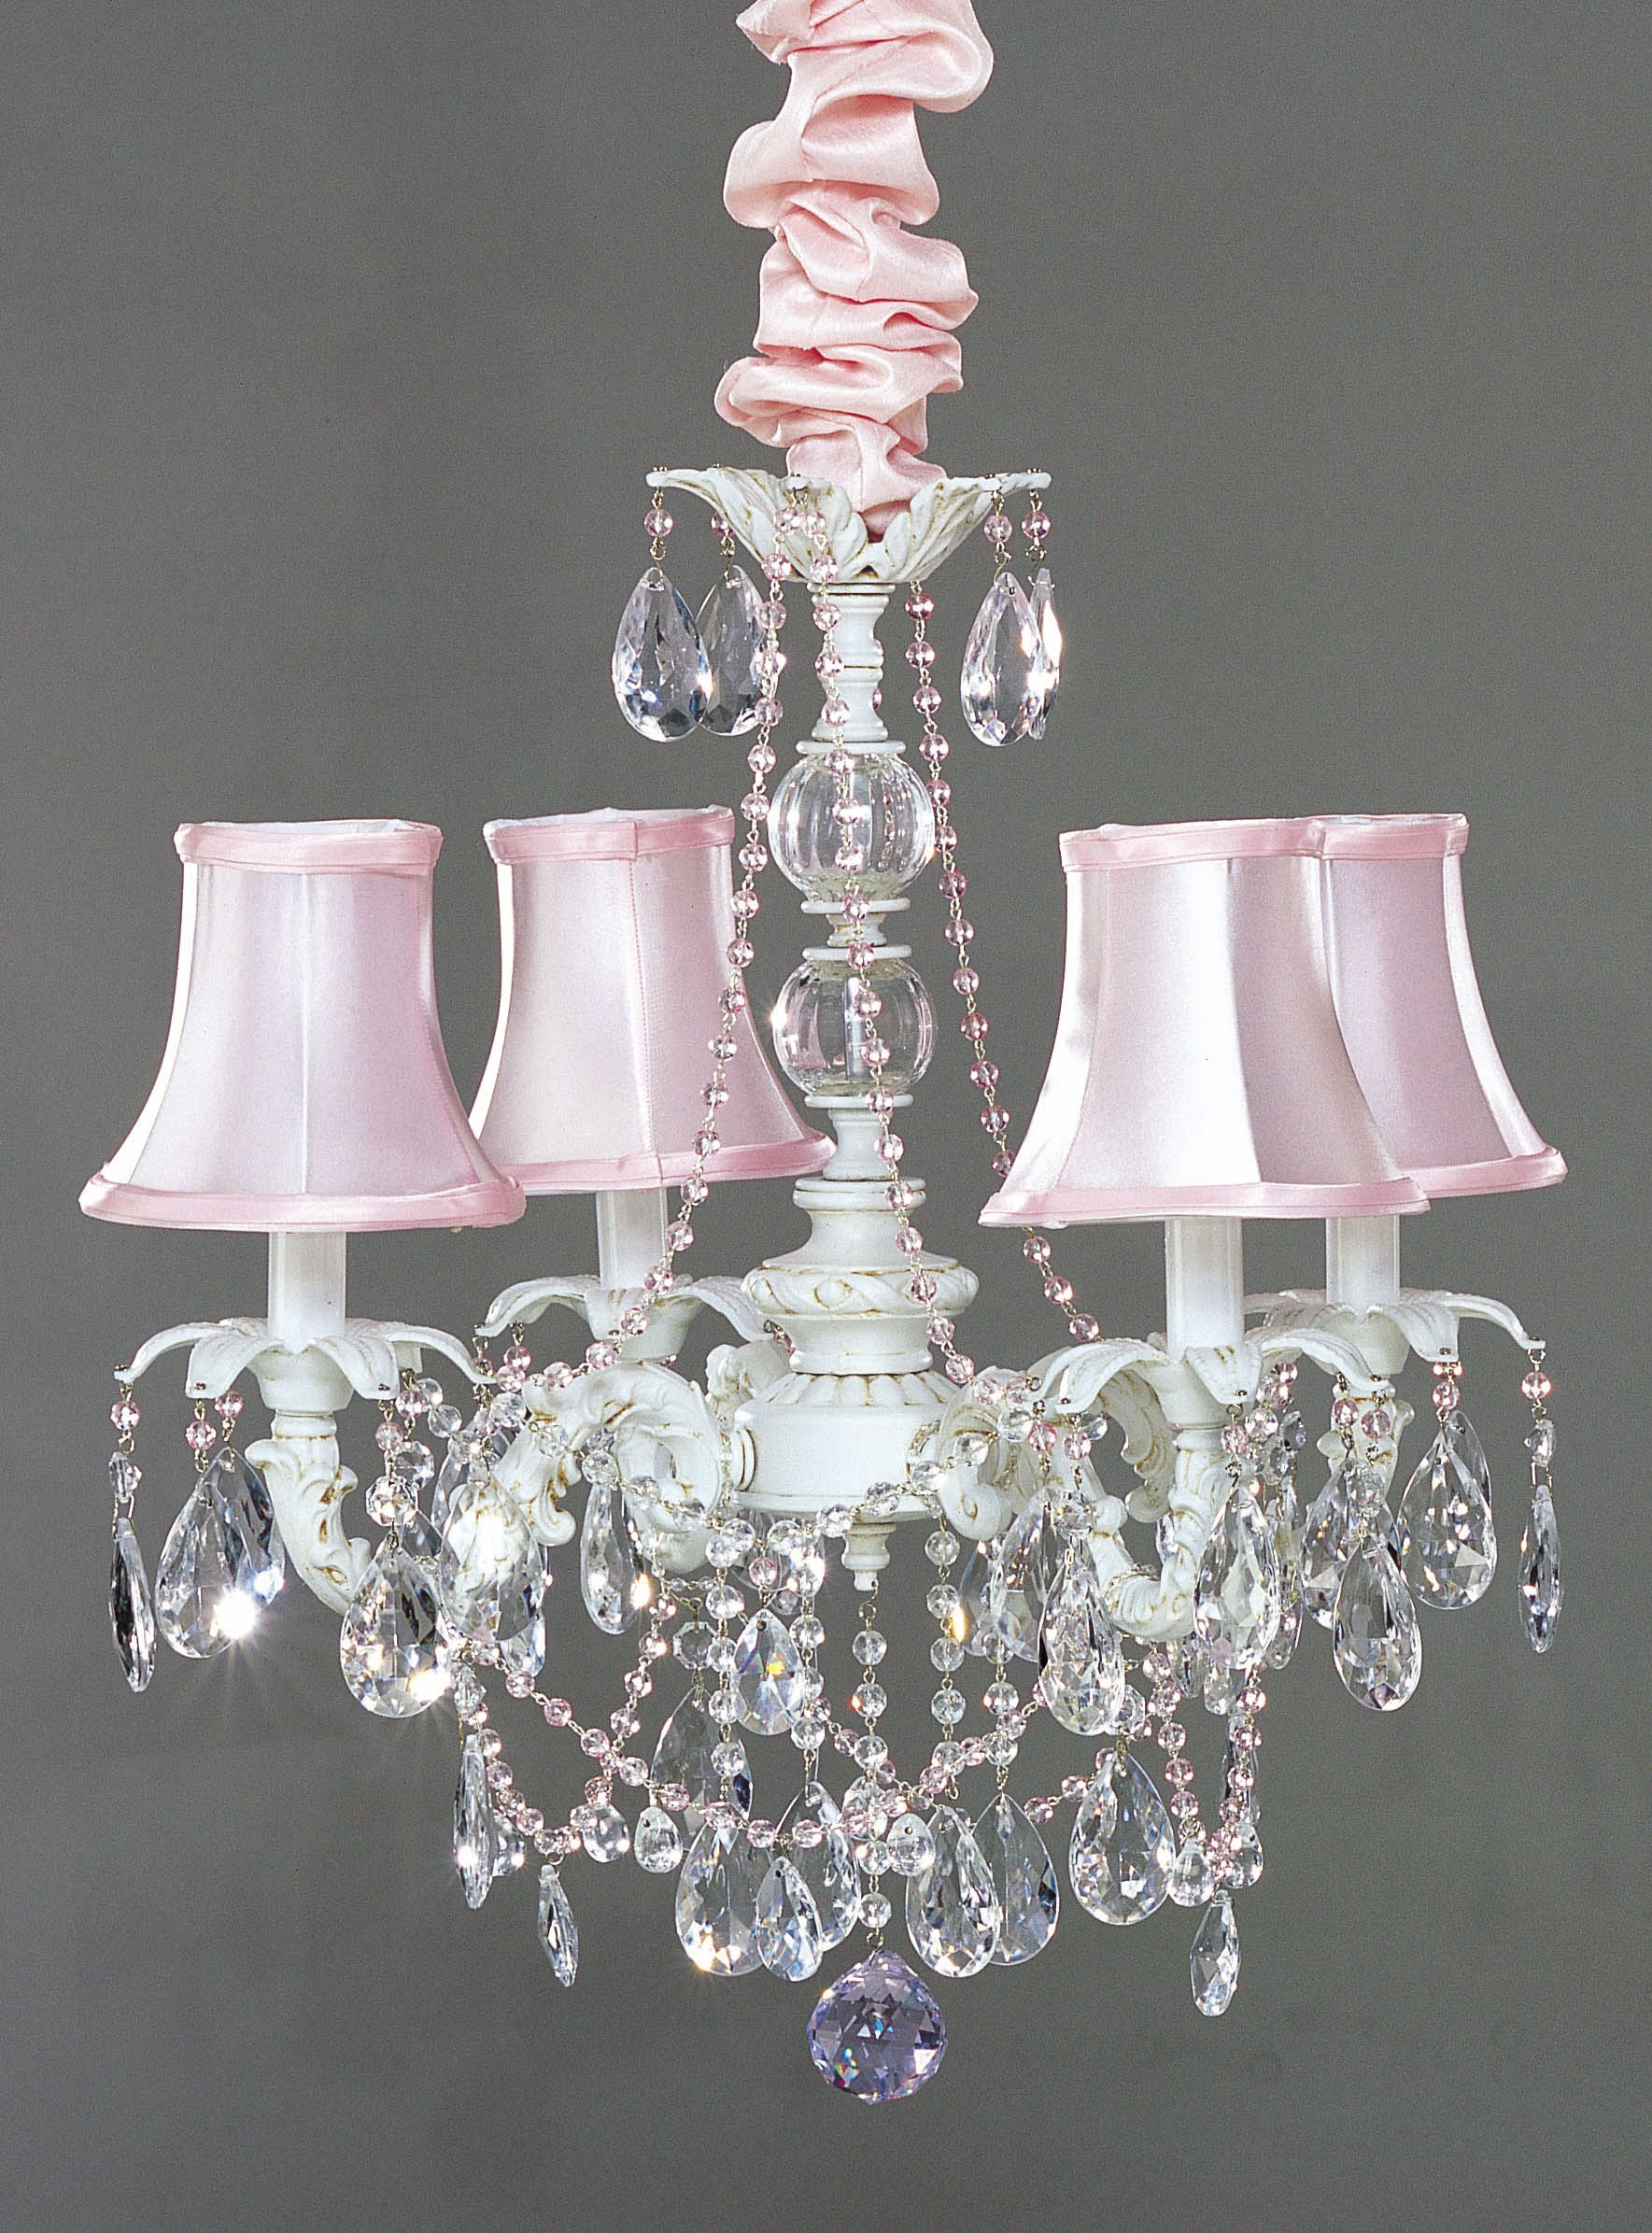 Shab Chic Chandelier Best For Your Interior Decor Home With Intended For Small Shabby Chic Chandelier (Image 12 of 15)